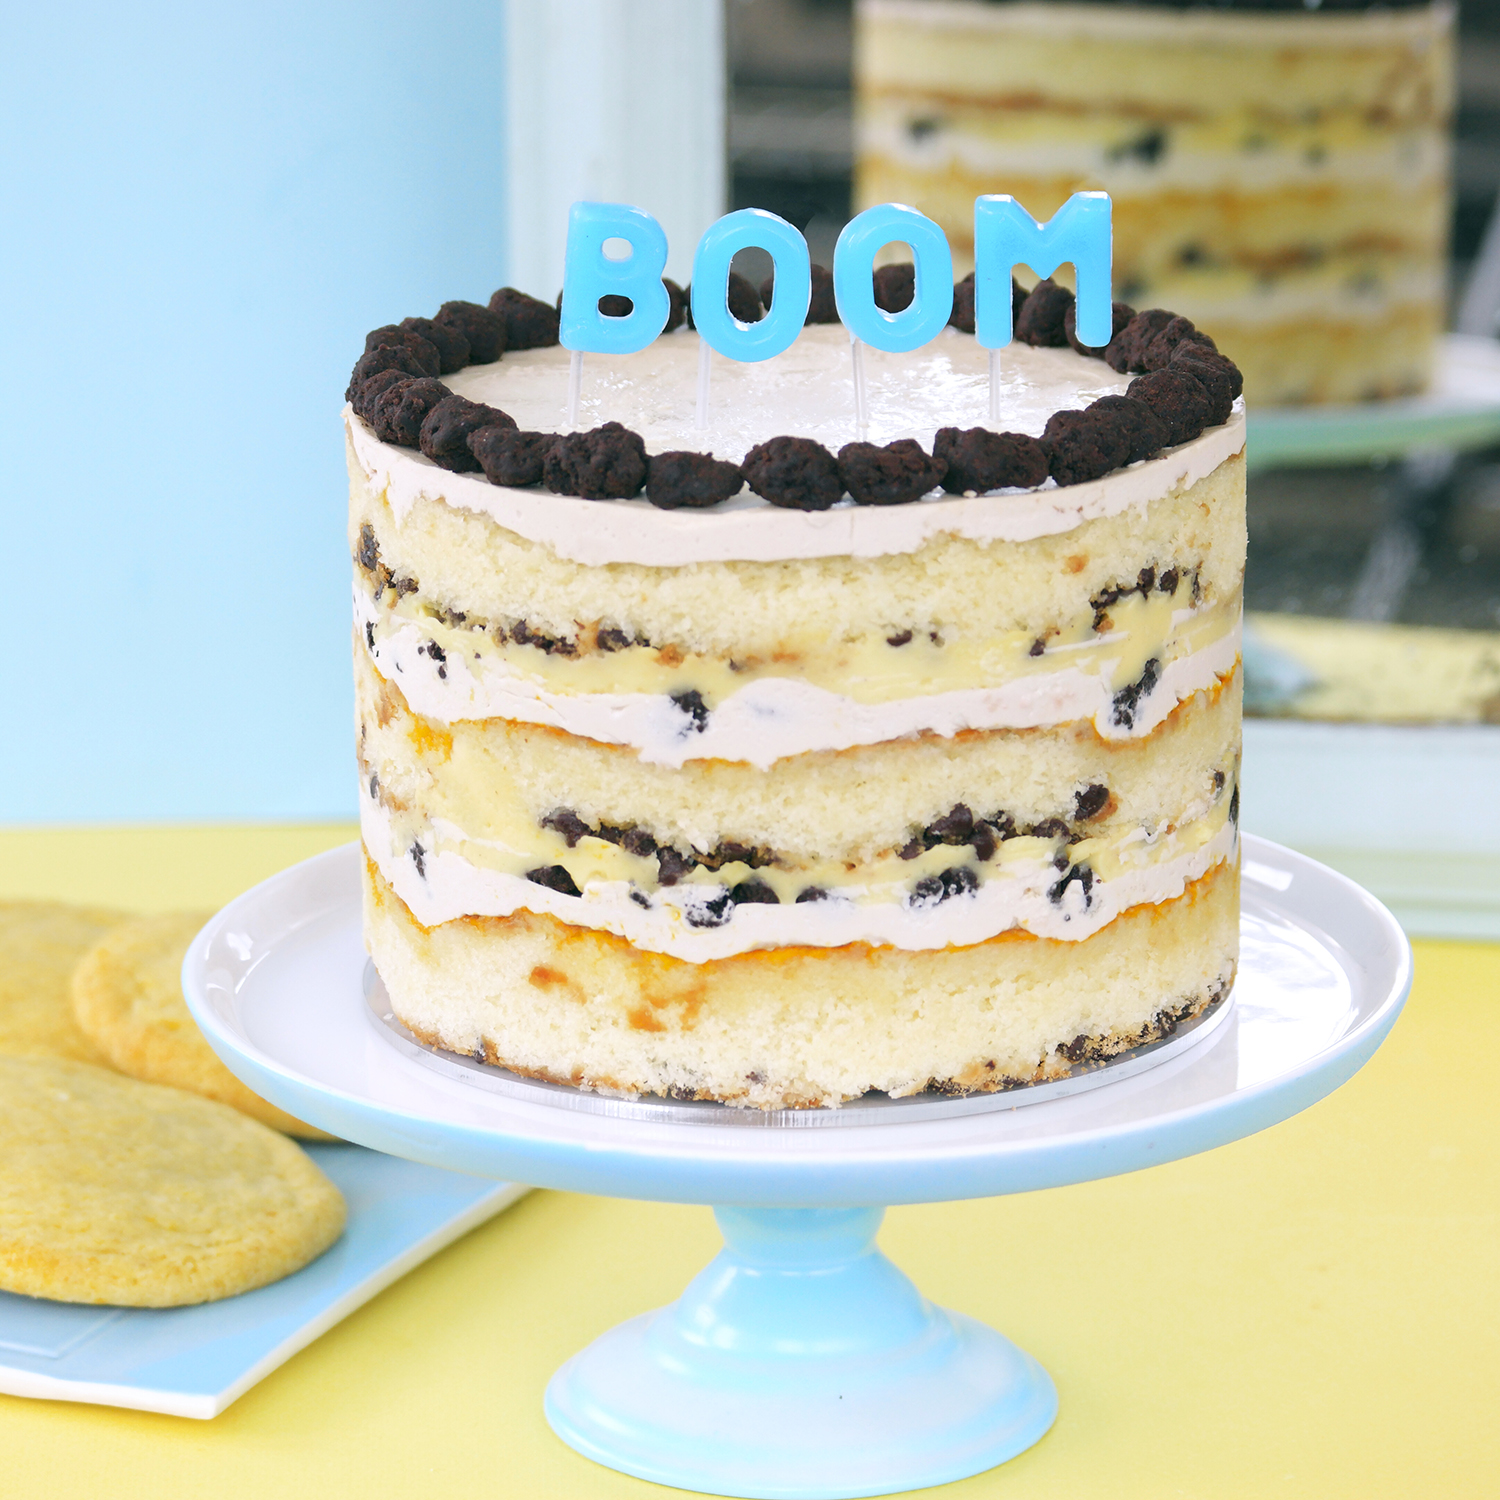 chocolate chip cake with blue boom candles